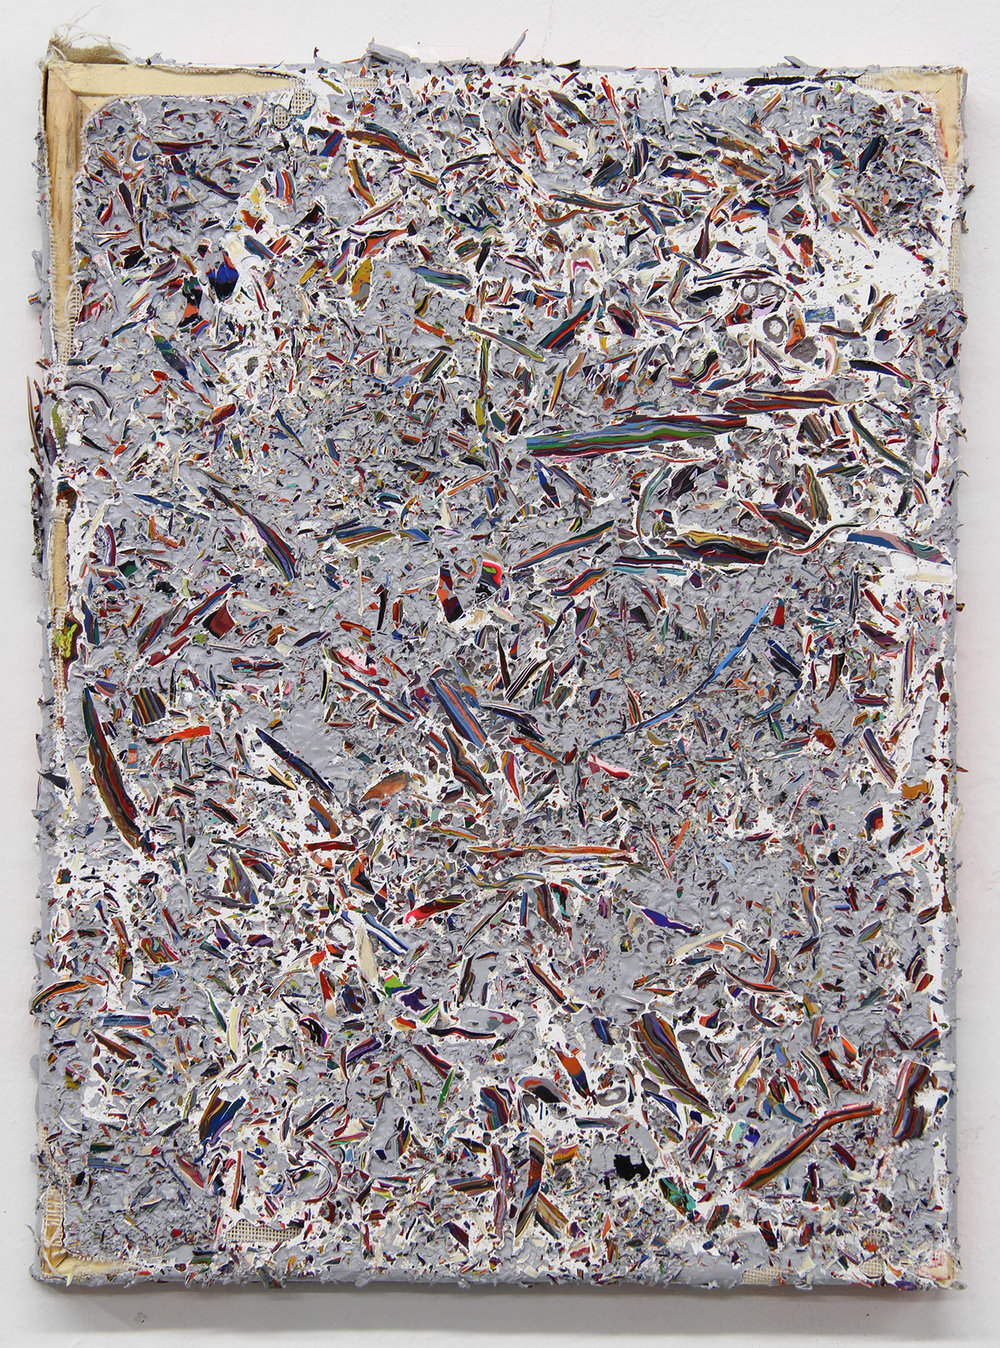 Shredded Painting 21